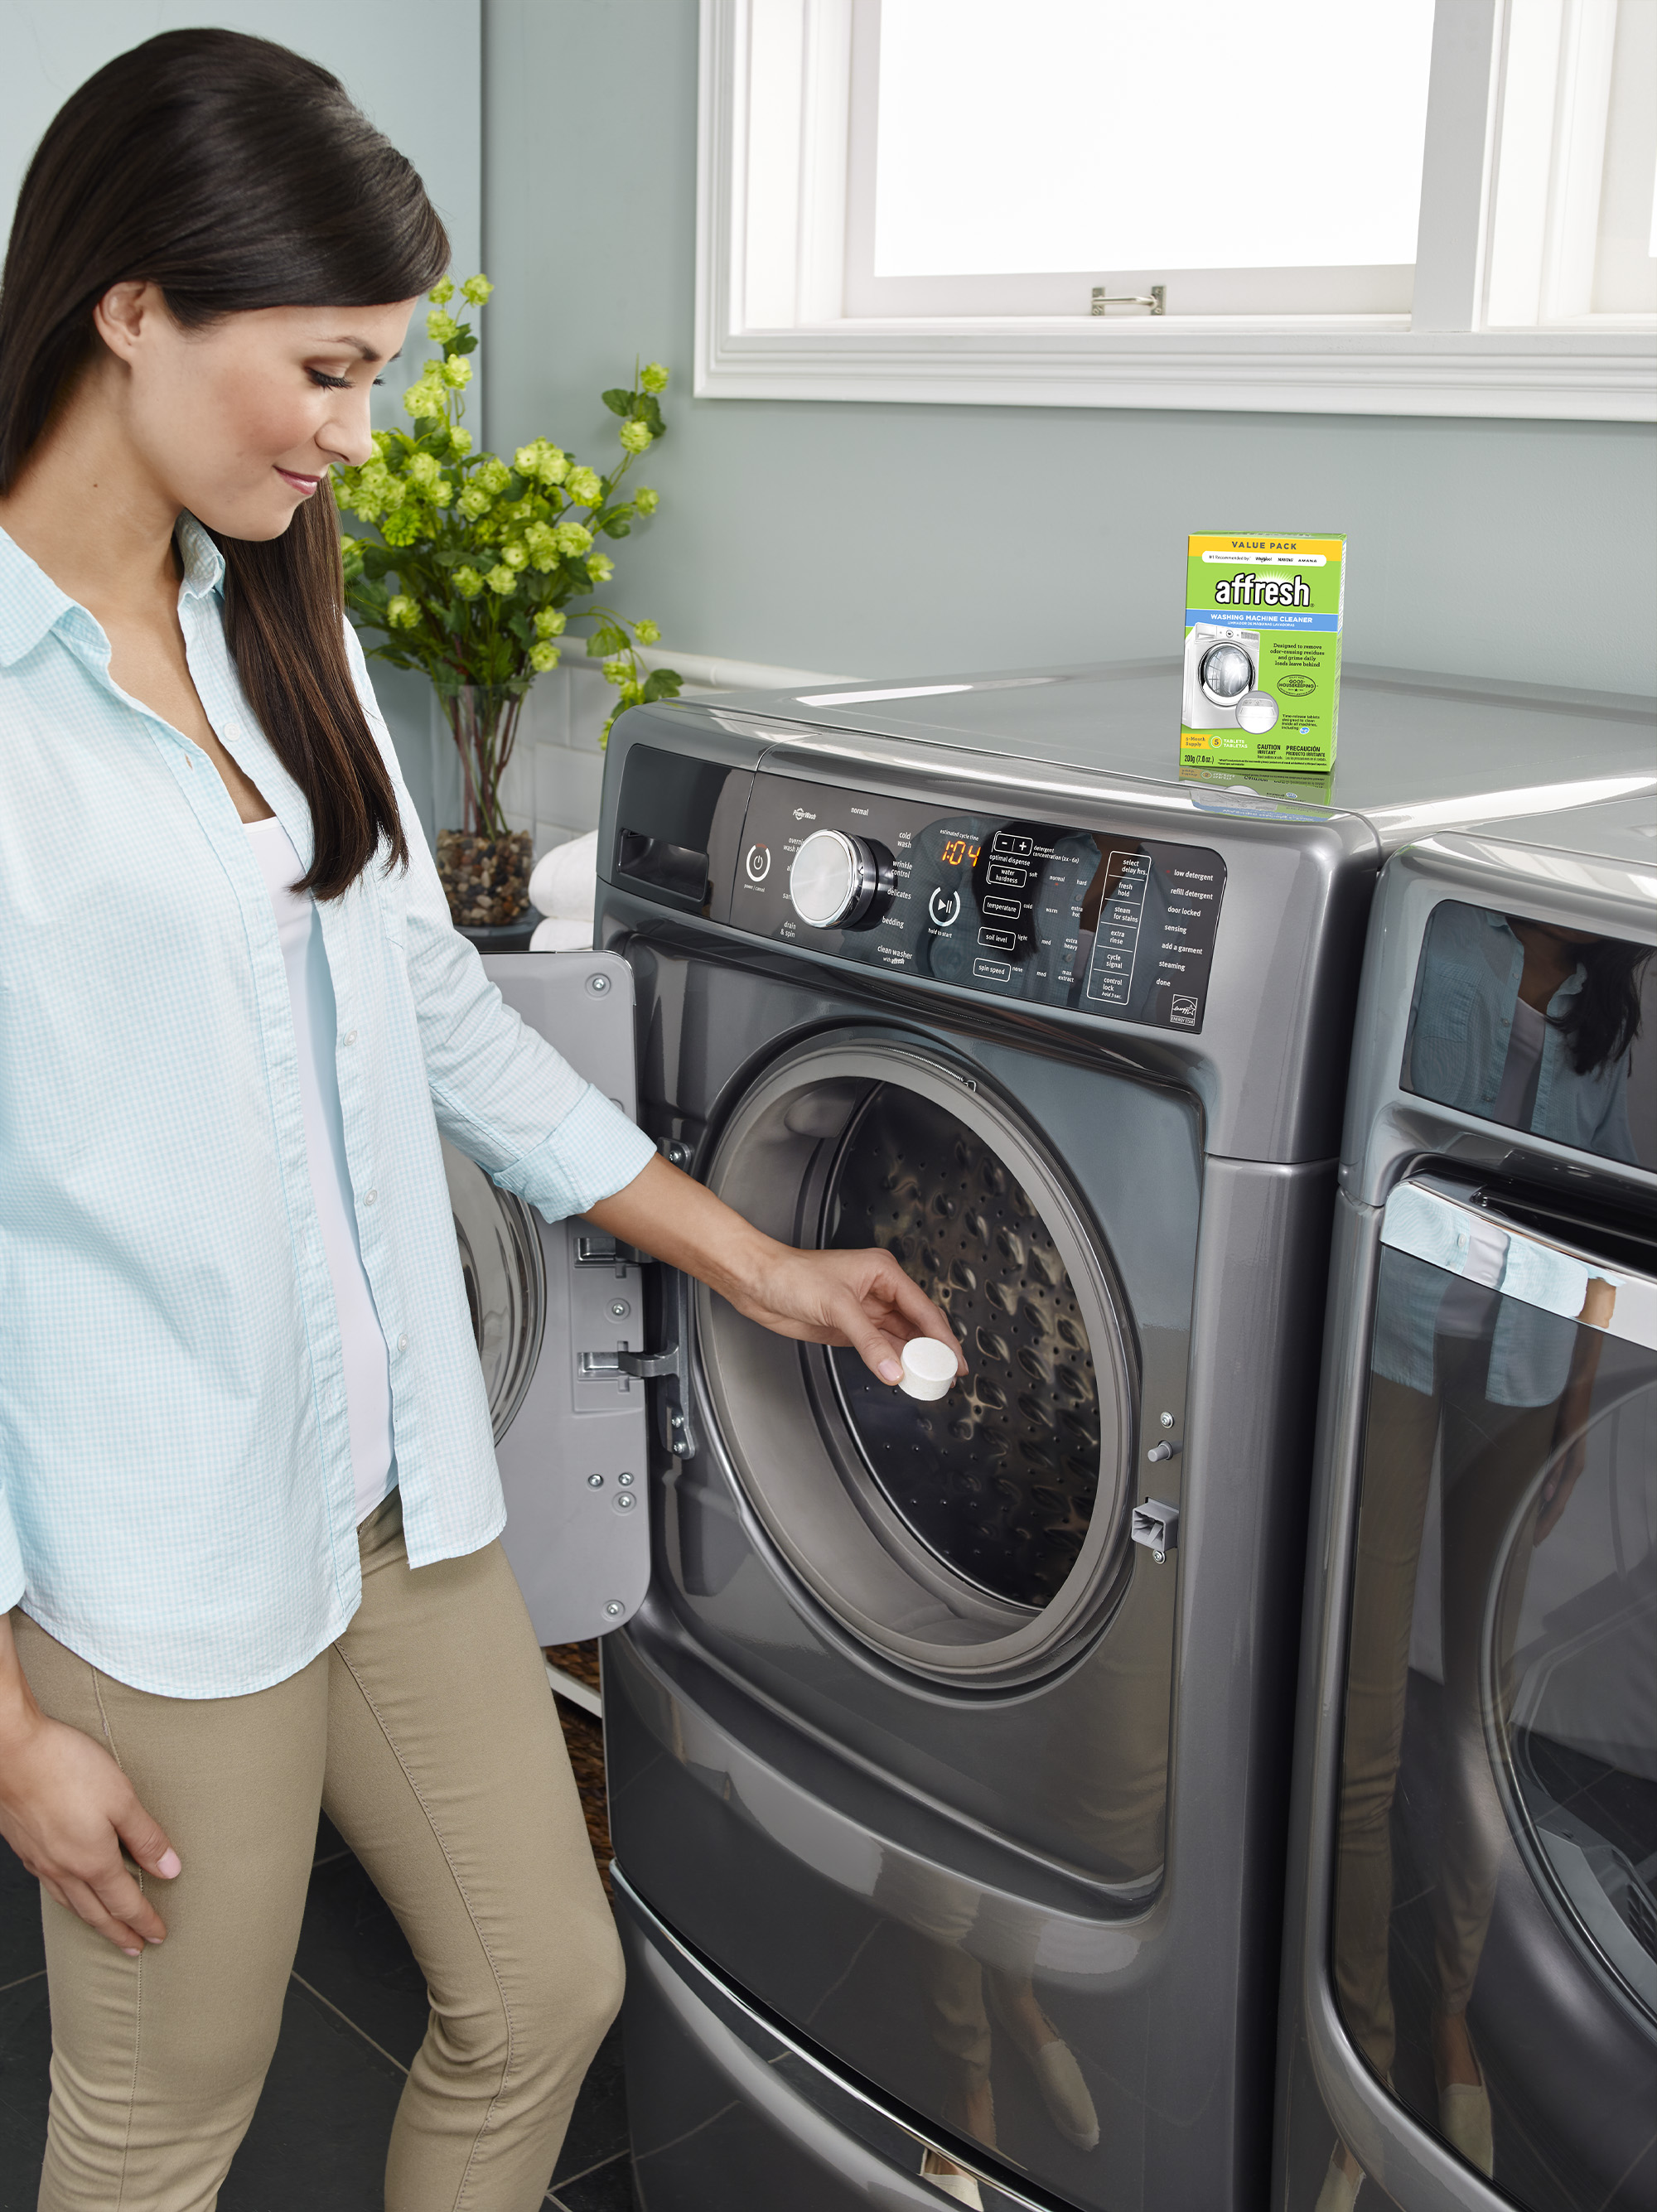 A long-haired woman in an aqua shirt places an affresh Washing Machine Cleaner tablet into the drum of her front-load washer and prepares to run the